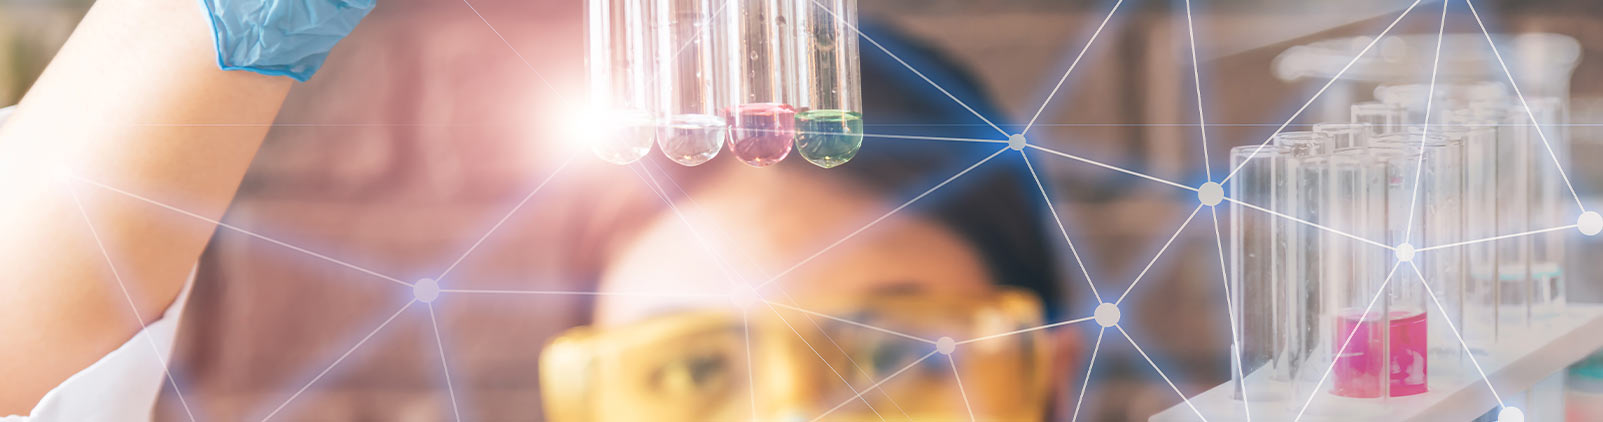 Image of healthcare innovations - banner image